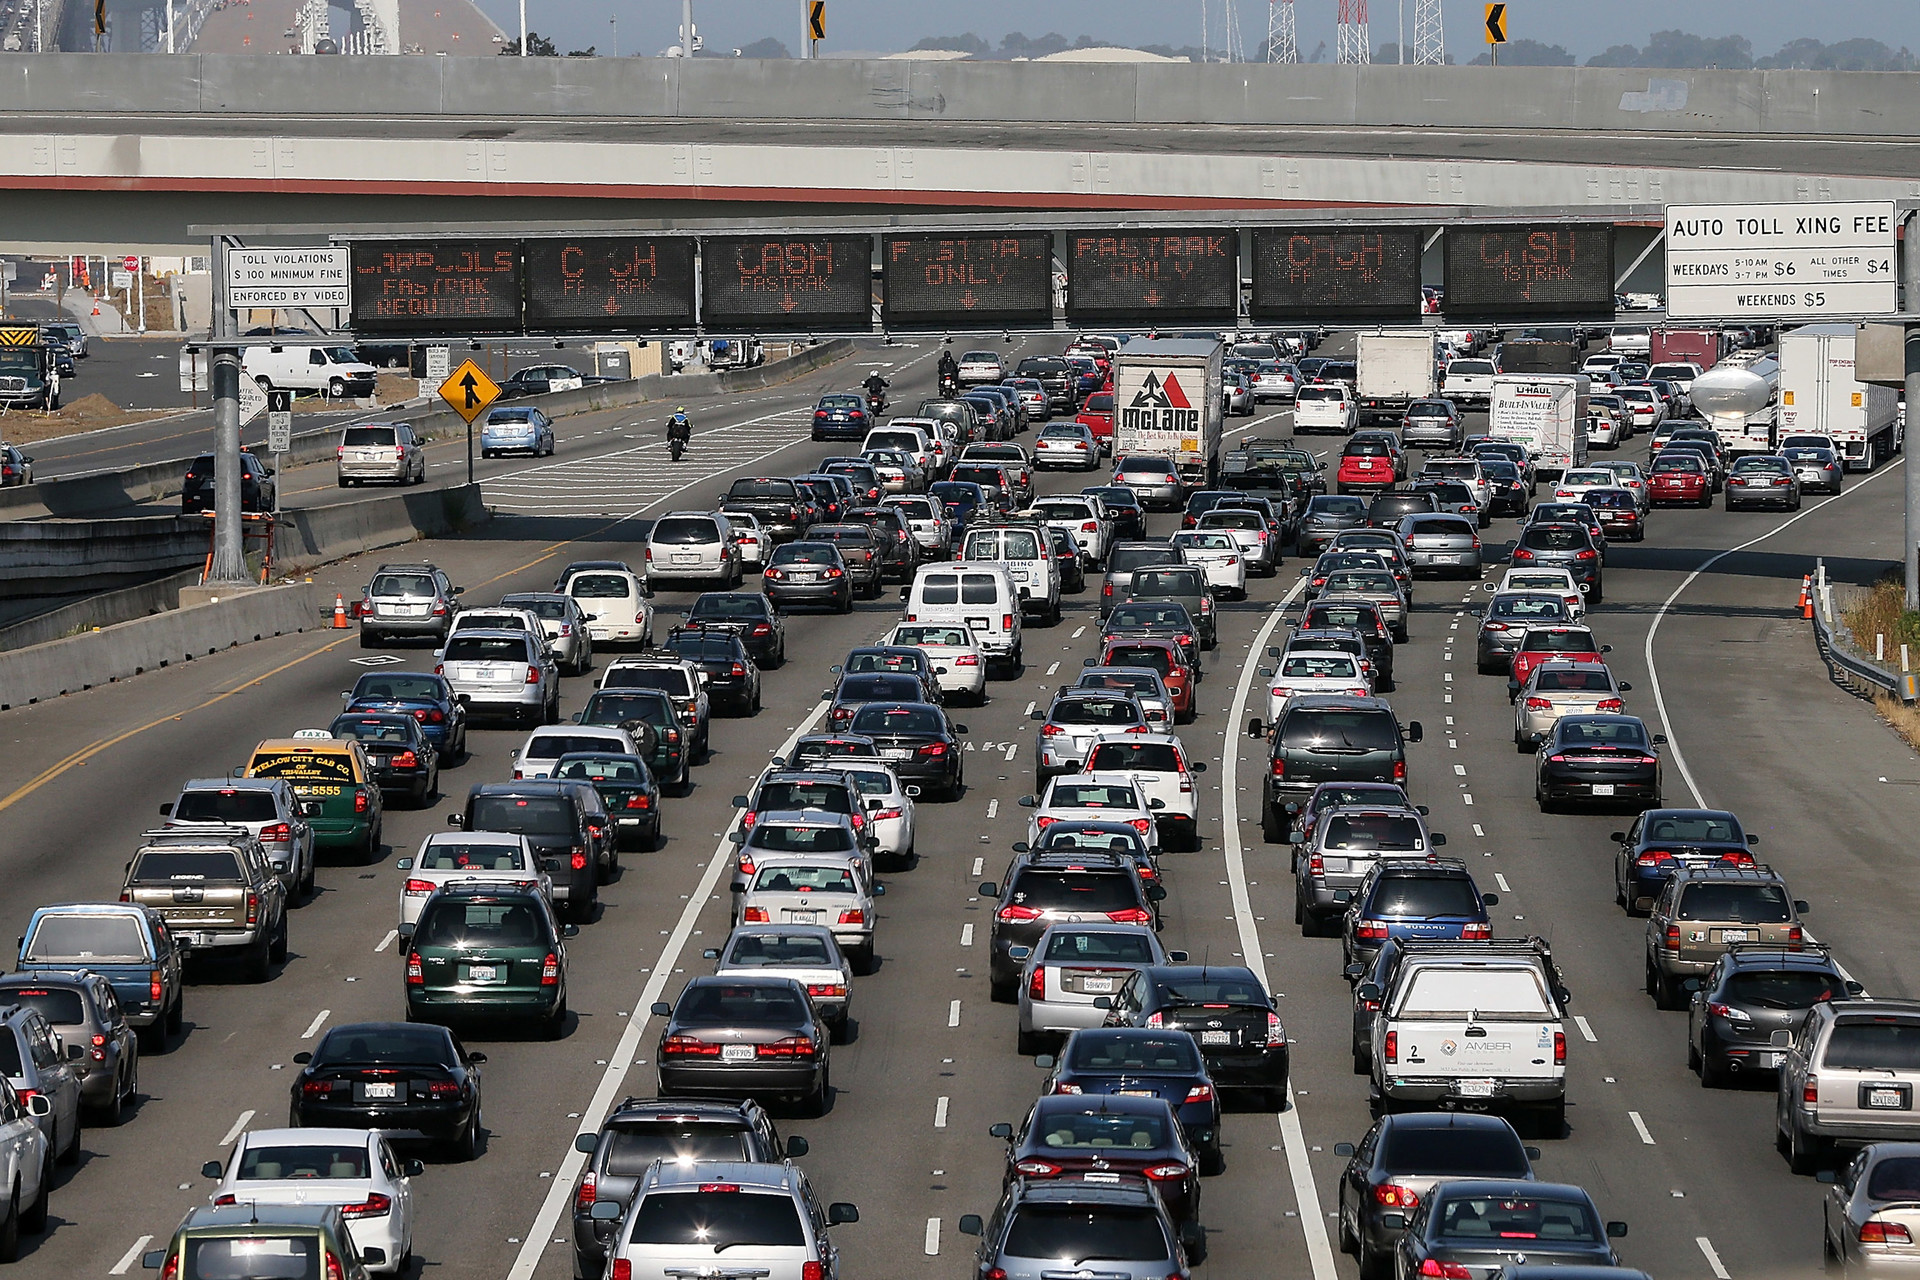 Commuter traffic backs up at the toll plaza to the San Francisco-Oakland Bay Bridge.